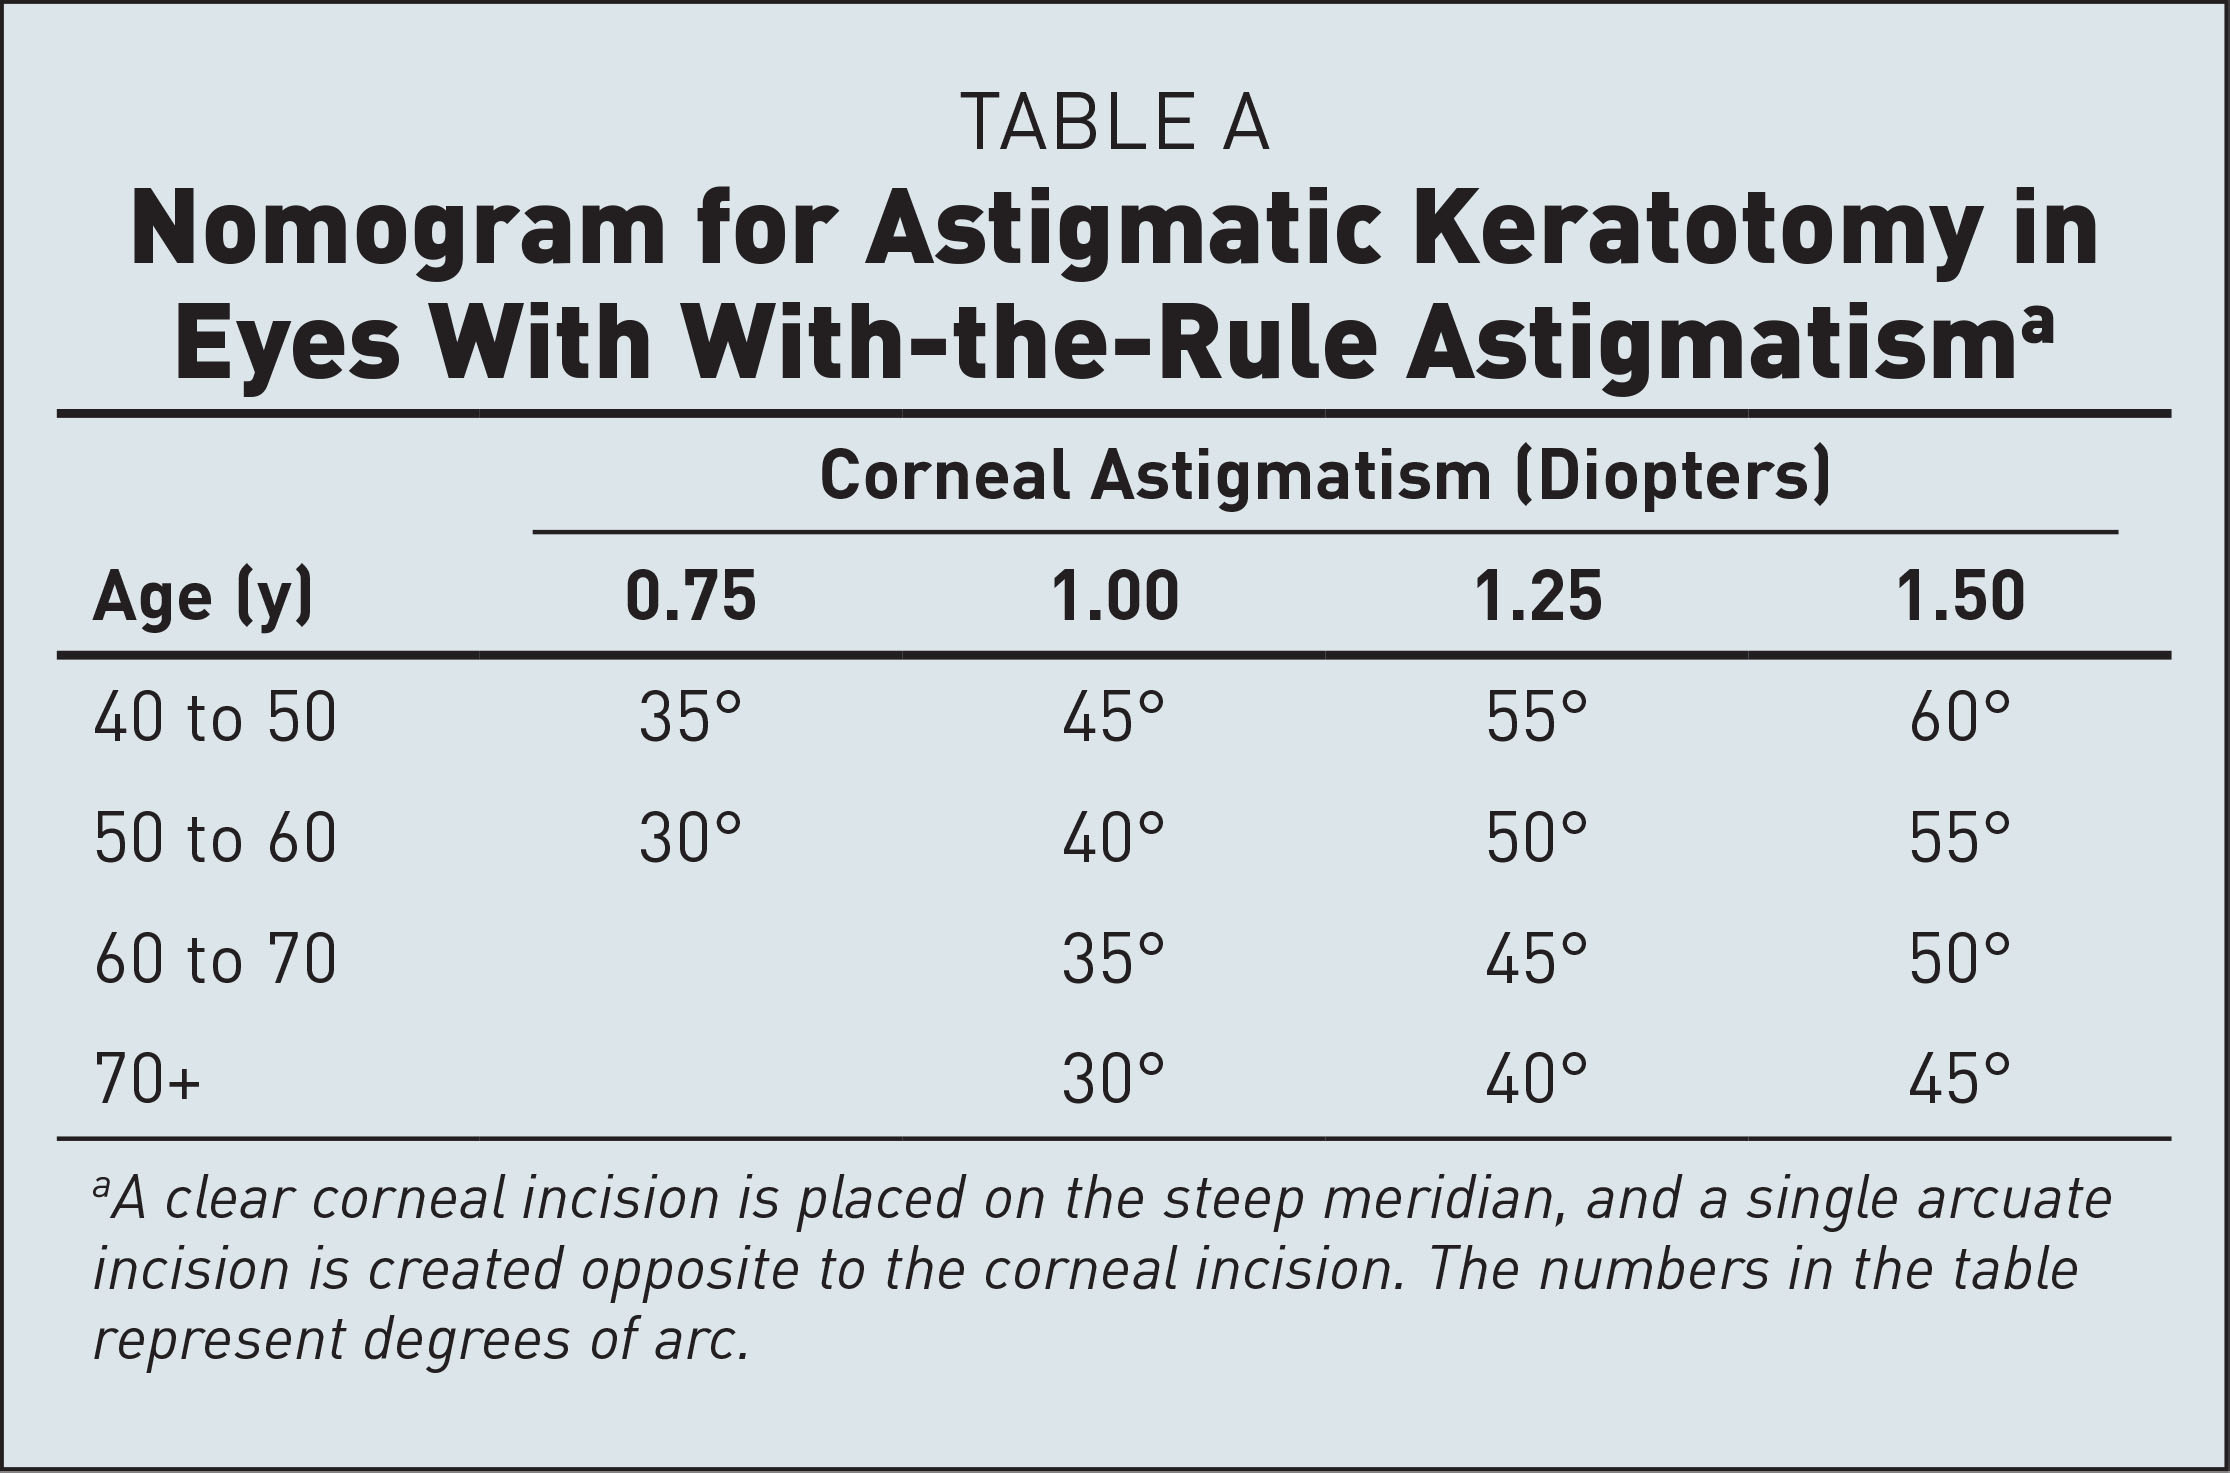 Nomogram for Astigmatic Keratotomy in Eyes With With-the-Rule Astigmatisma